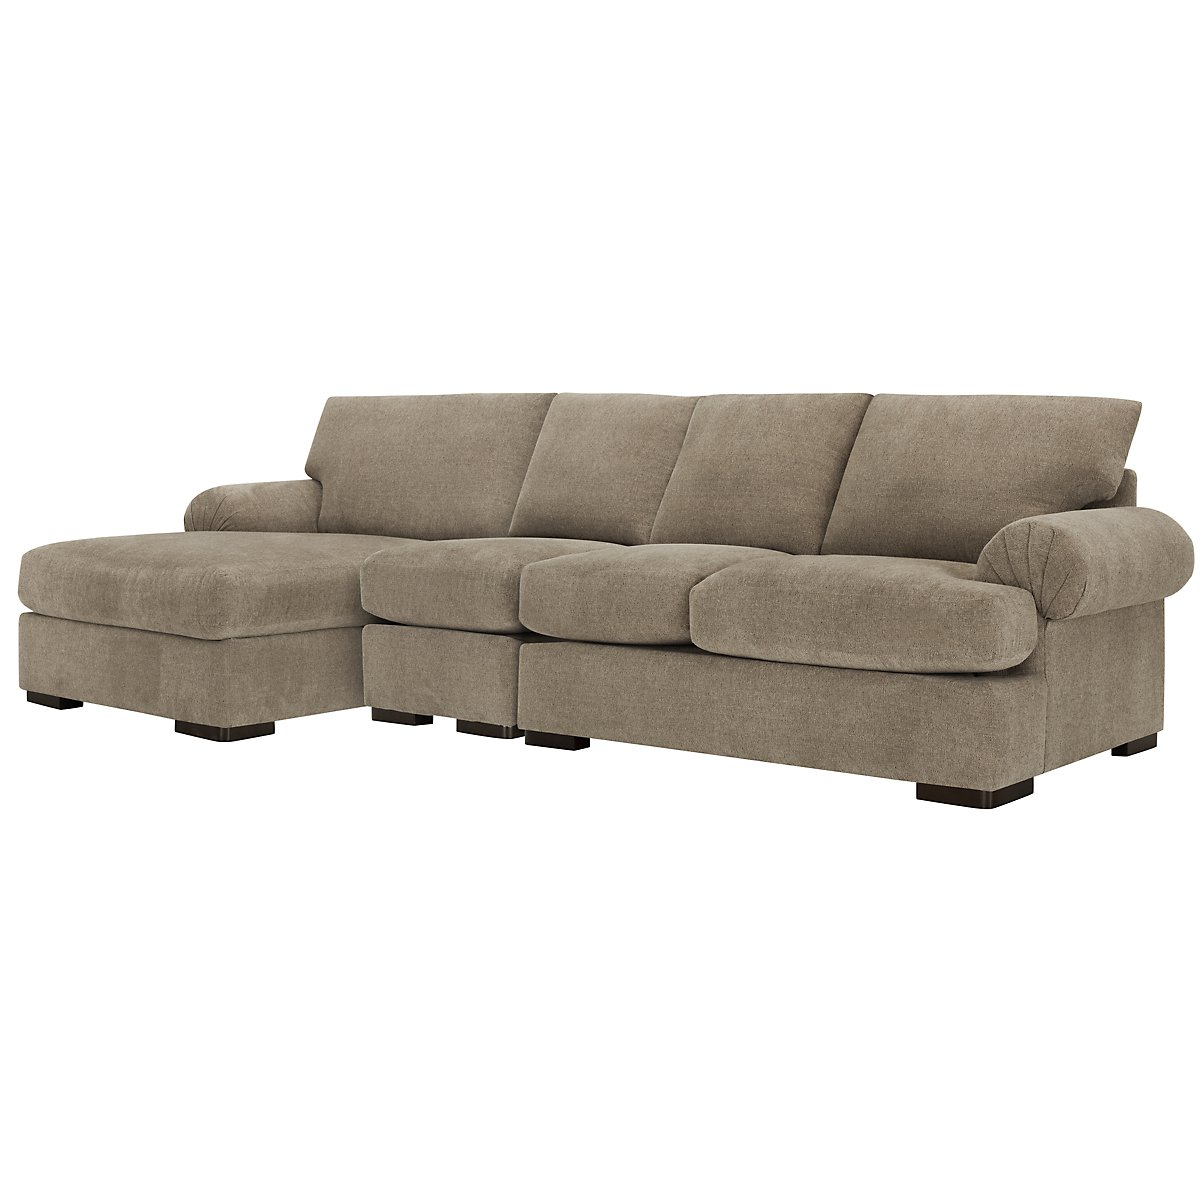 City furniture belair dk taupe microfiber small left for Brighton taupe 3 piece chaise and sofa set